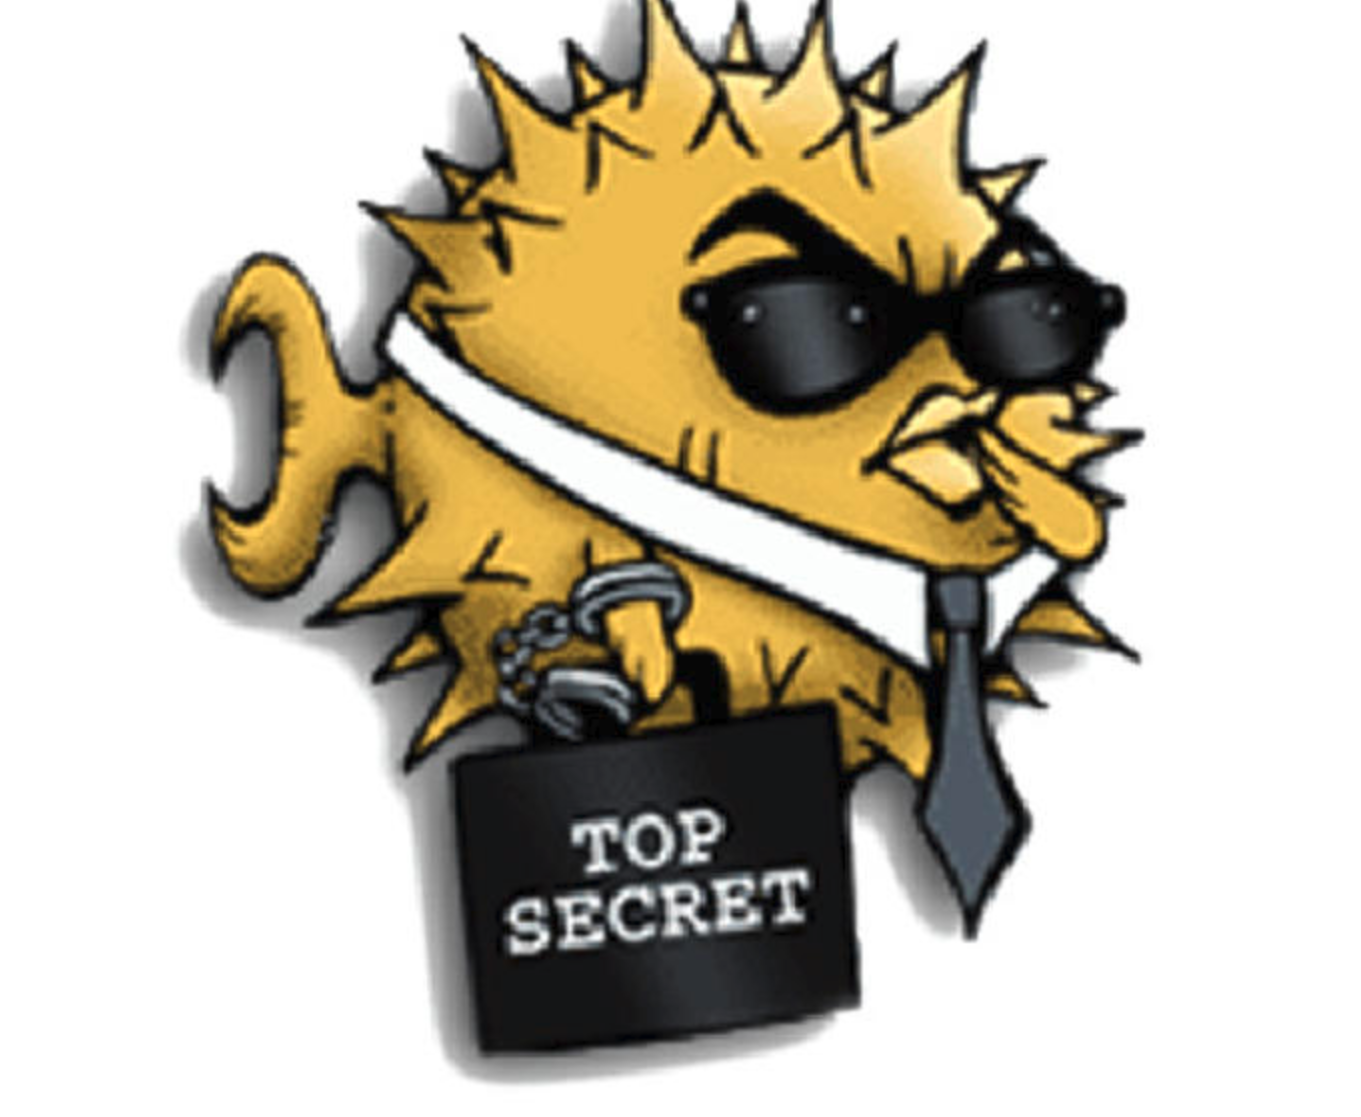 CVE-2020-15778: OpenSSh Remote Comand Injection Vulnerability Alert